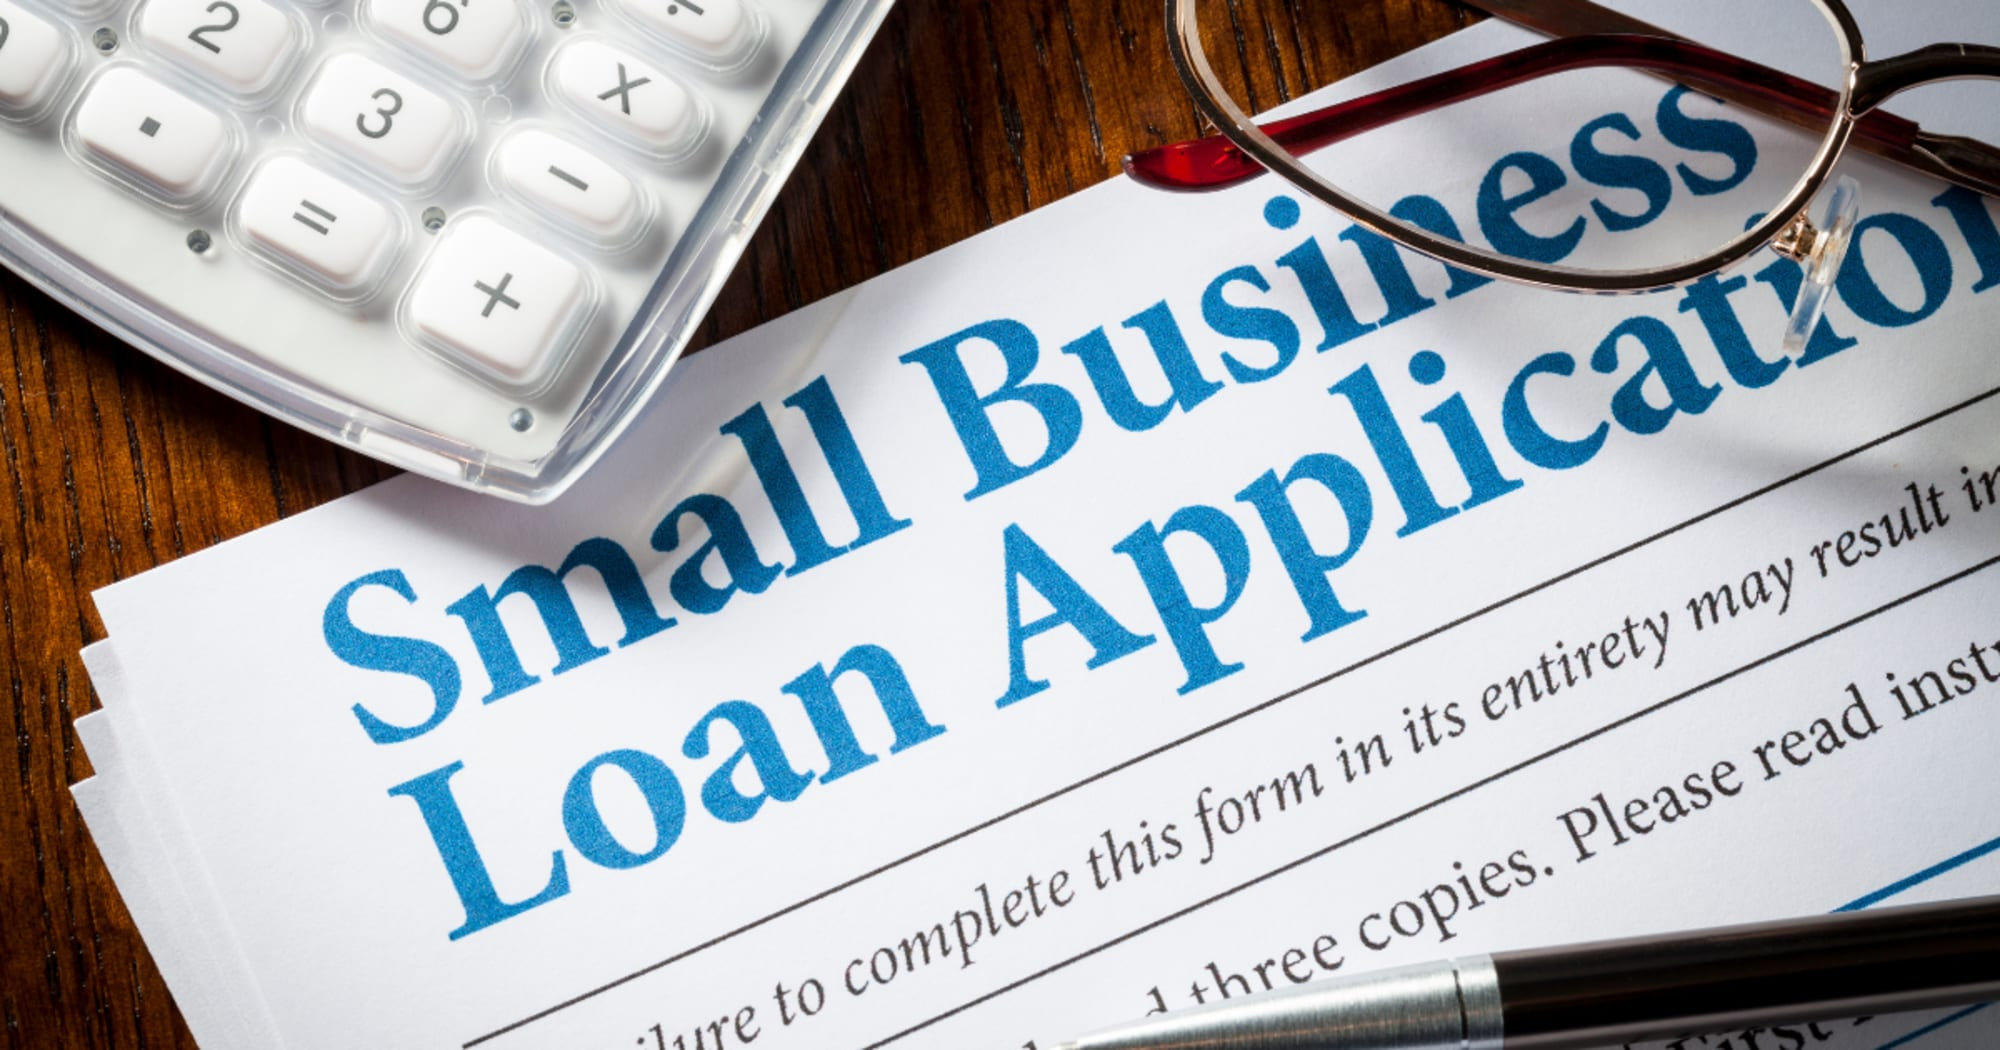 The terms for tourism business loans had been relaxed even more -DOT